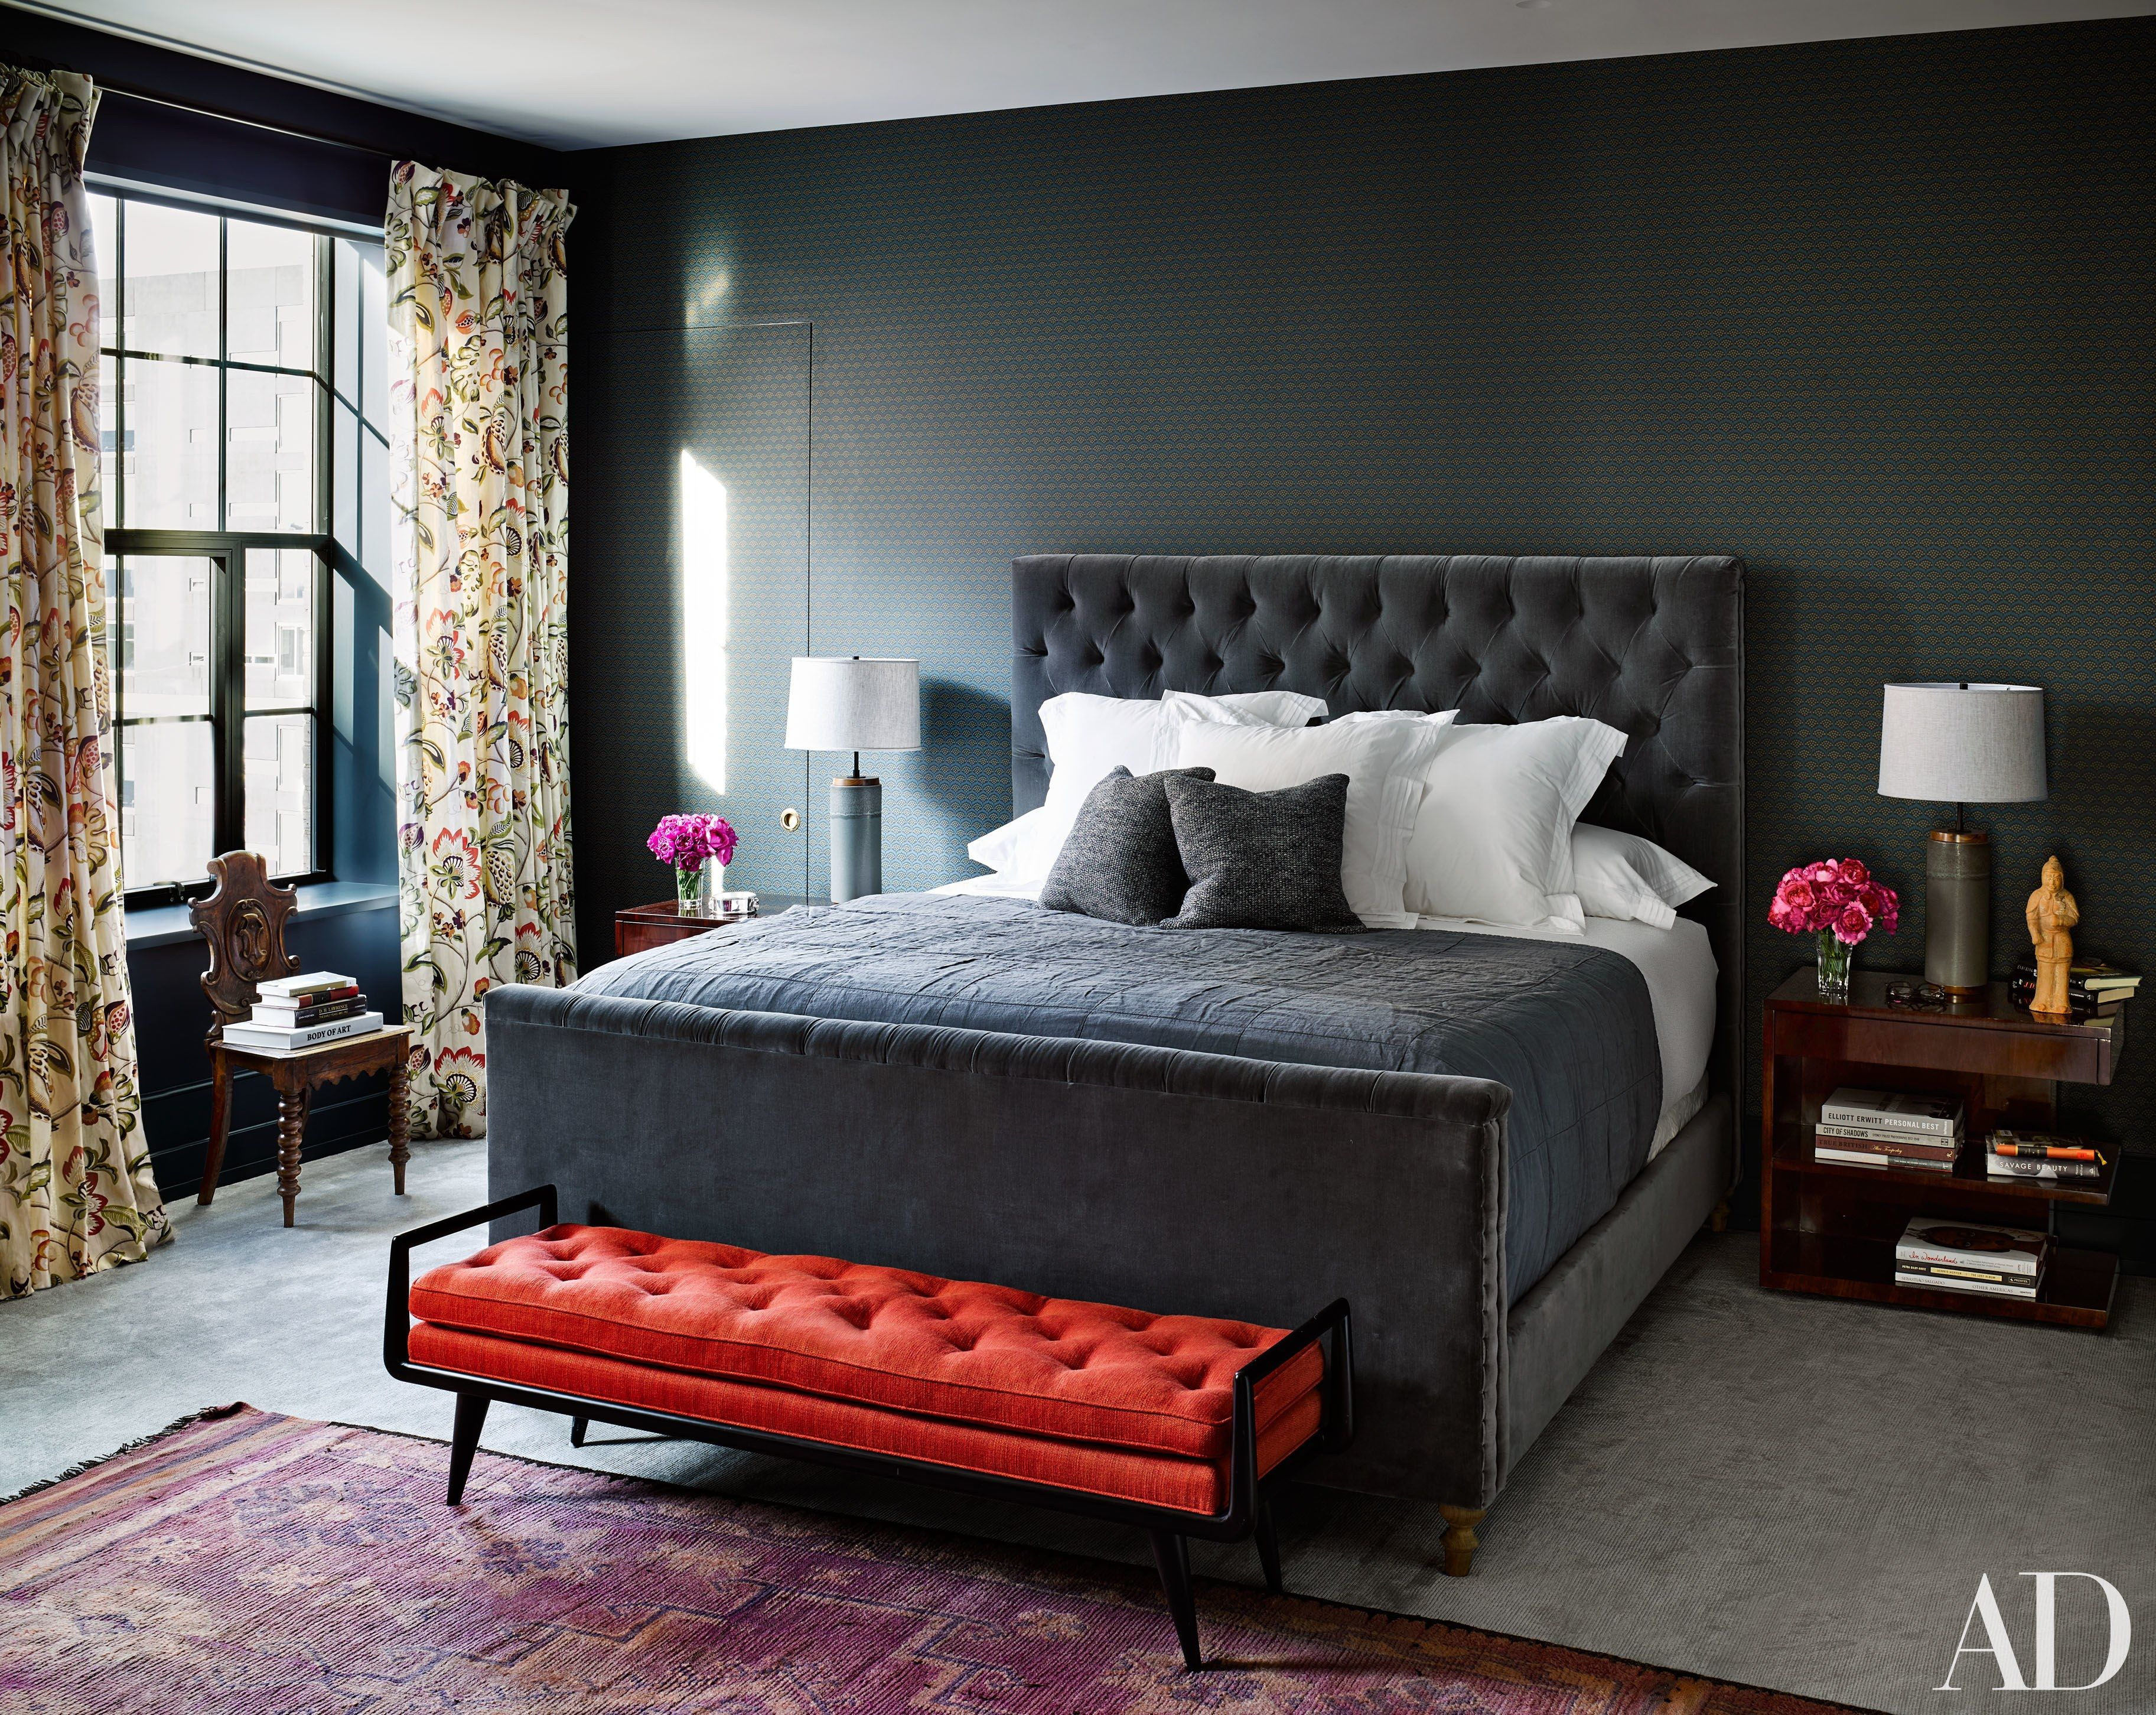 Of The Best Master Bedrooms Of Architectural Digest